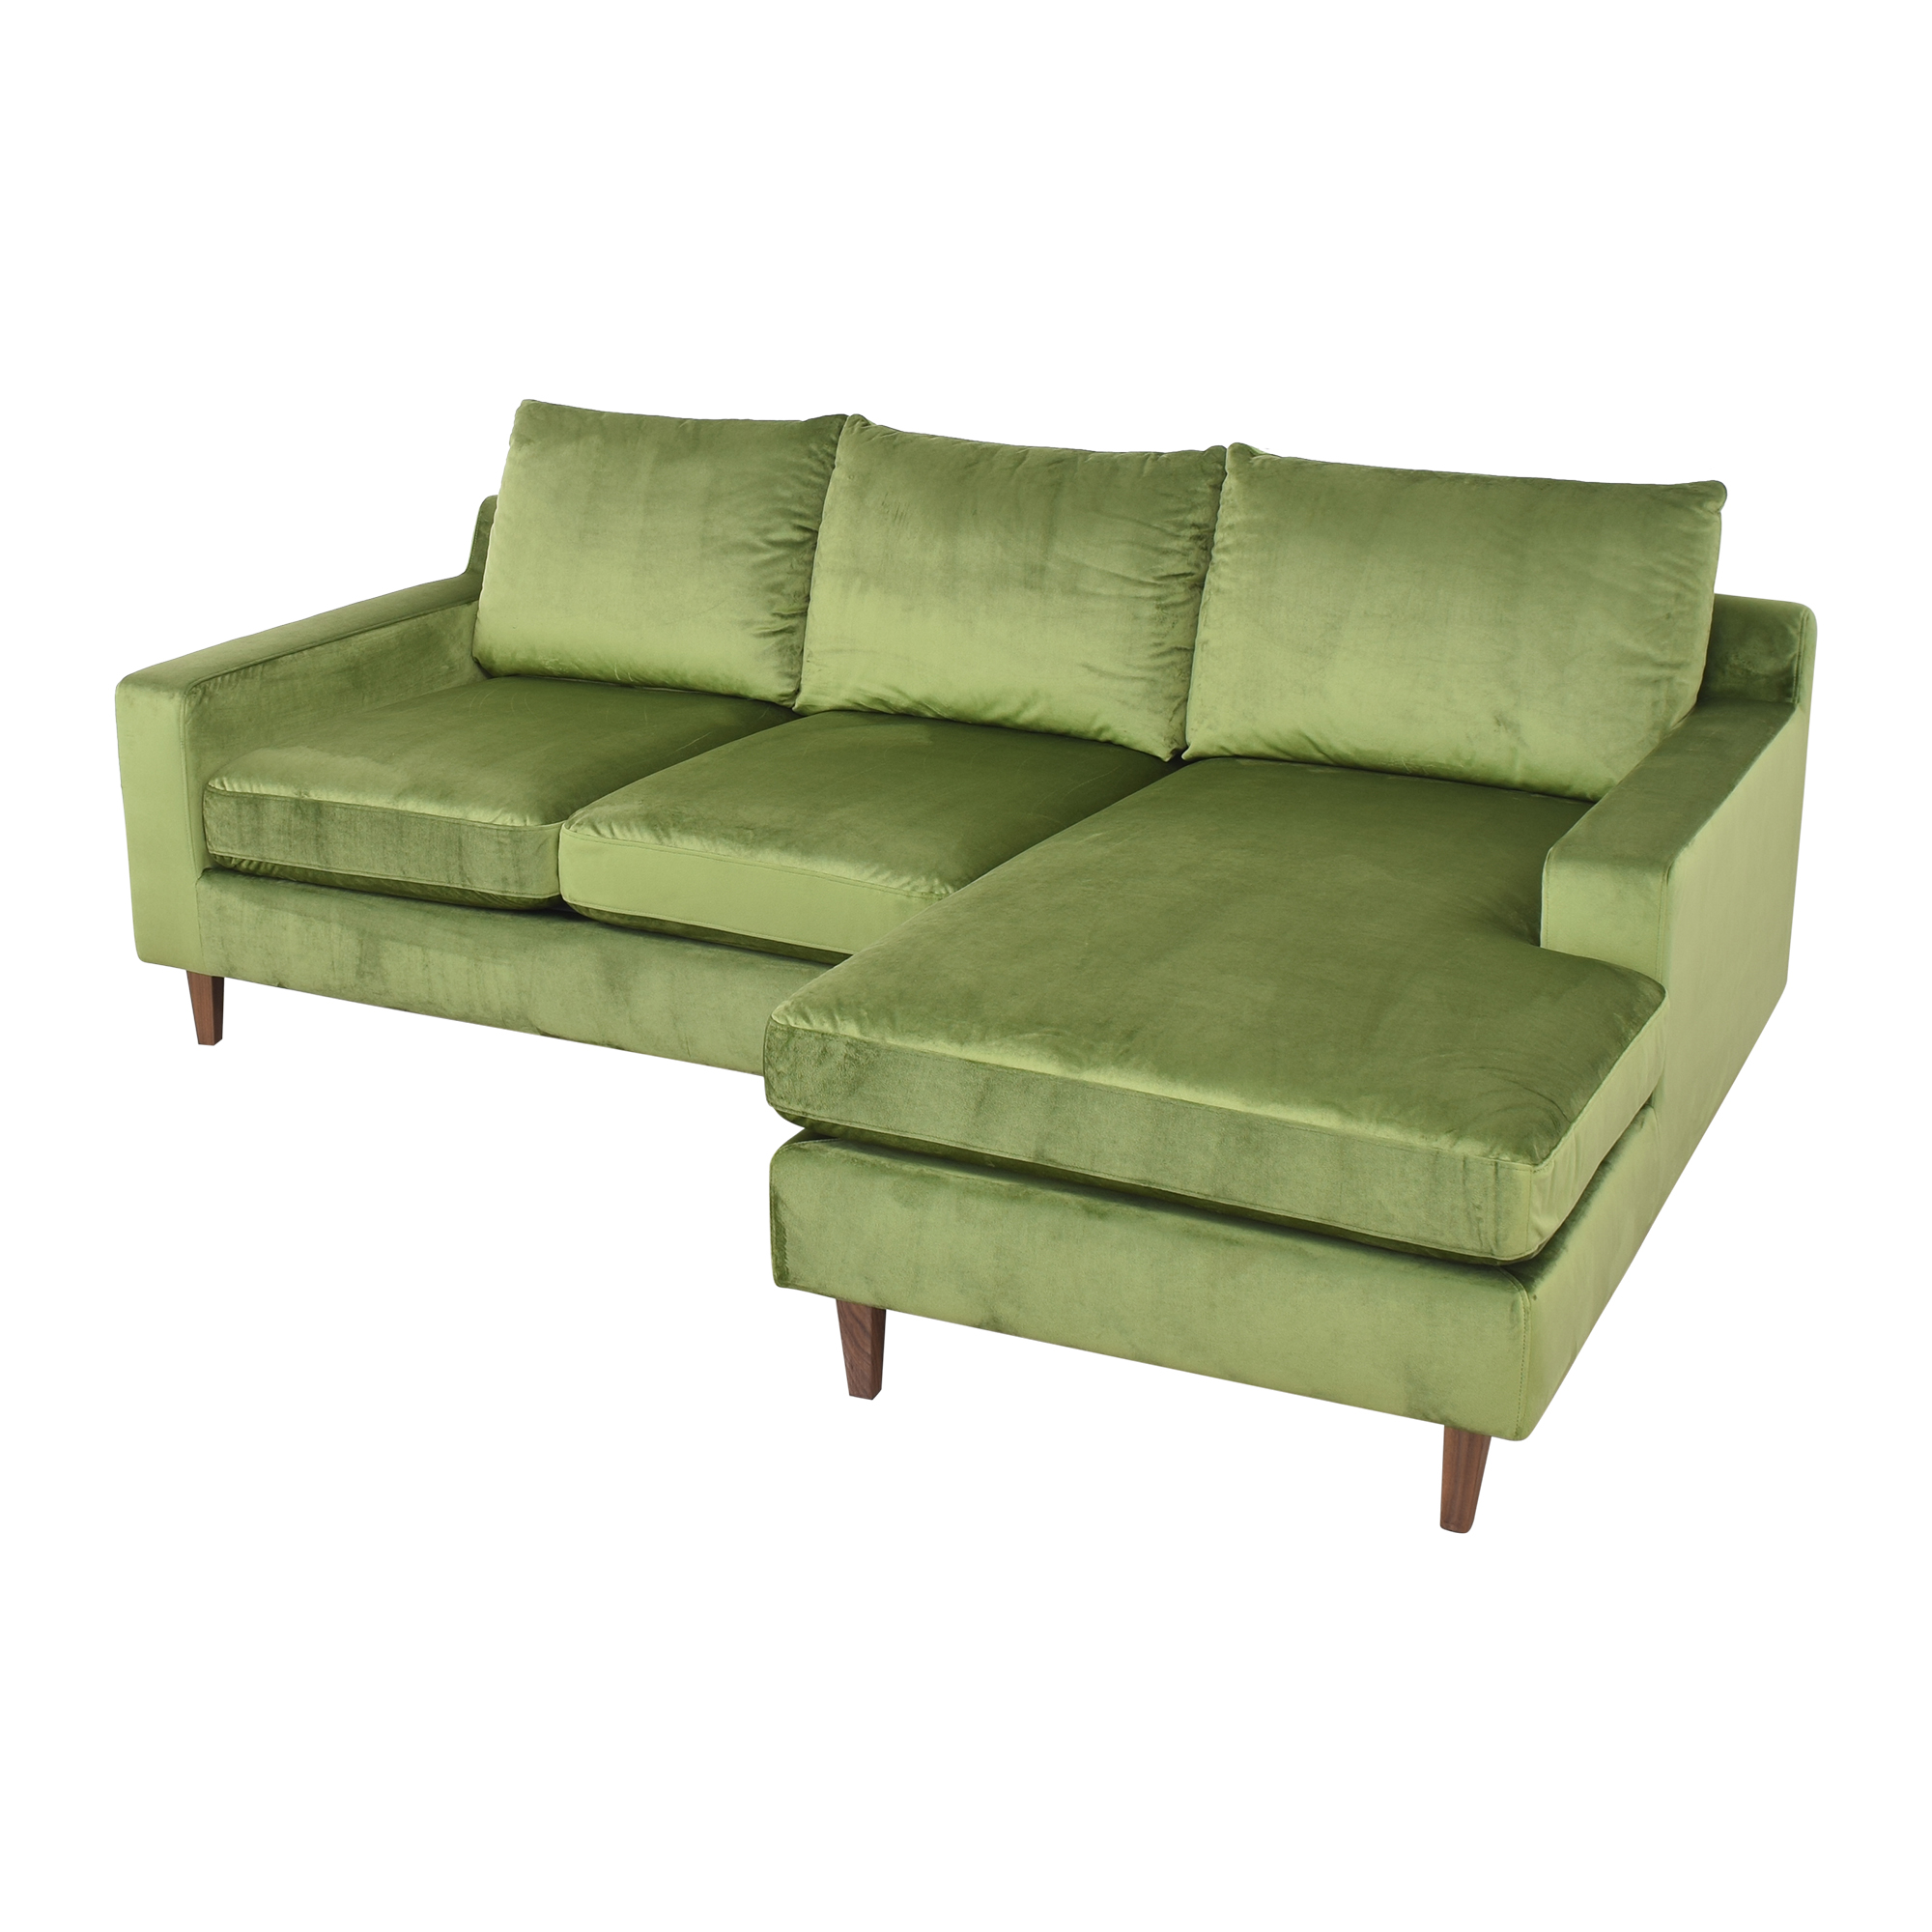 buy Interior Define Sloan Sectional Sofa with Chaise Interior Define Sofas